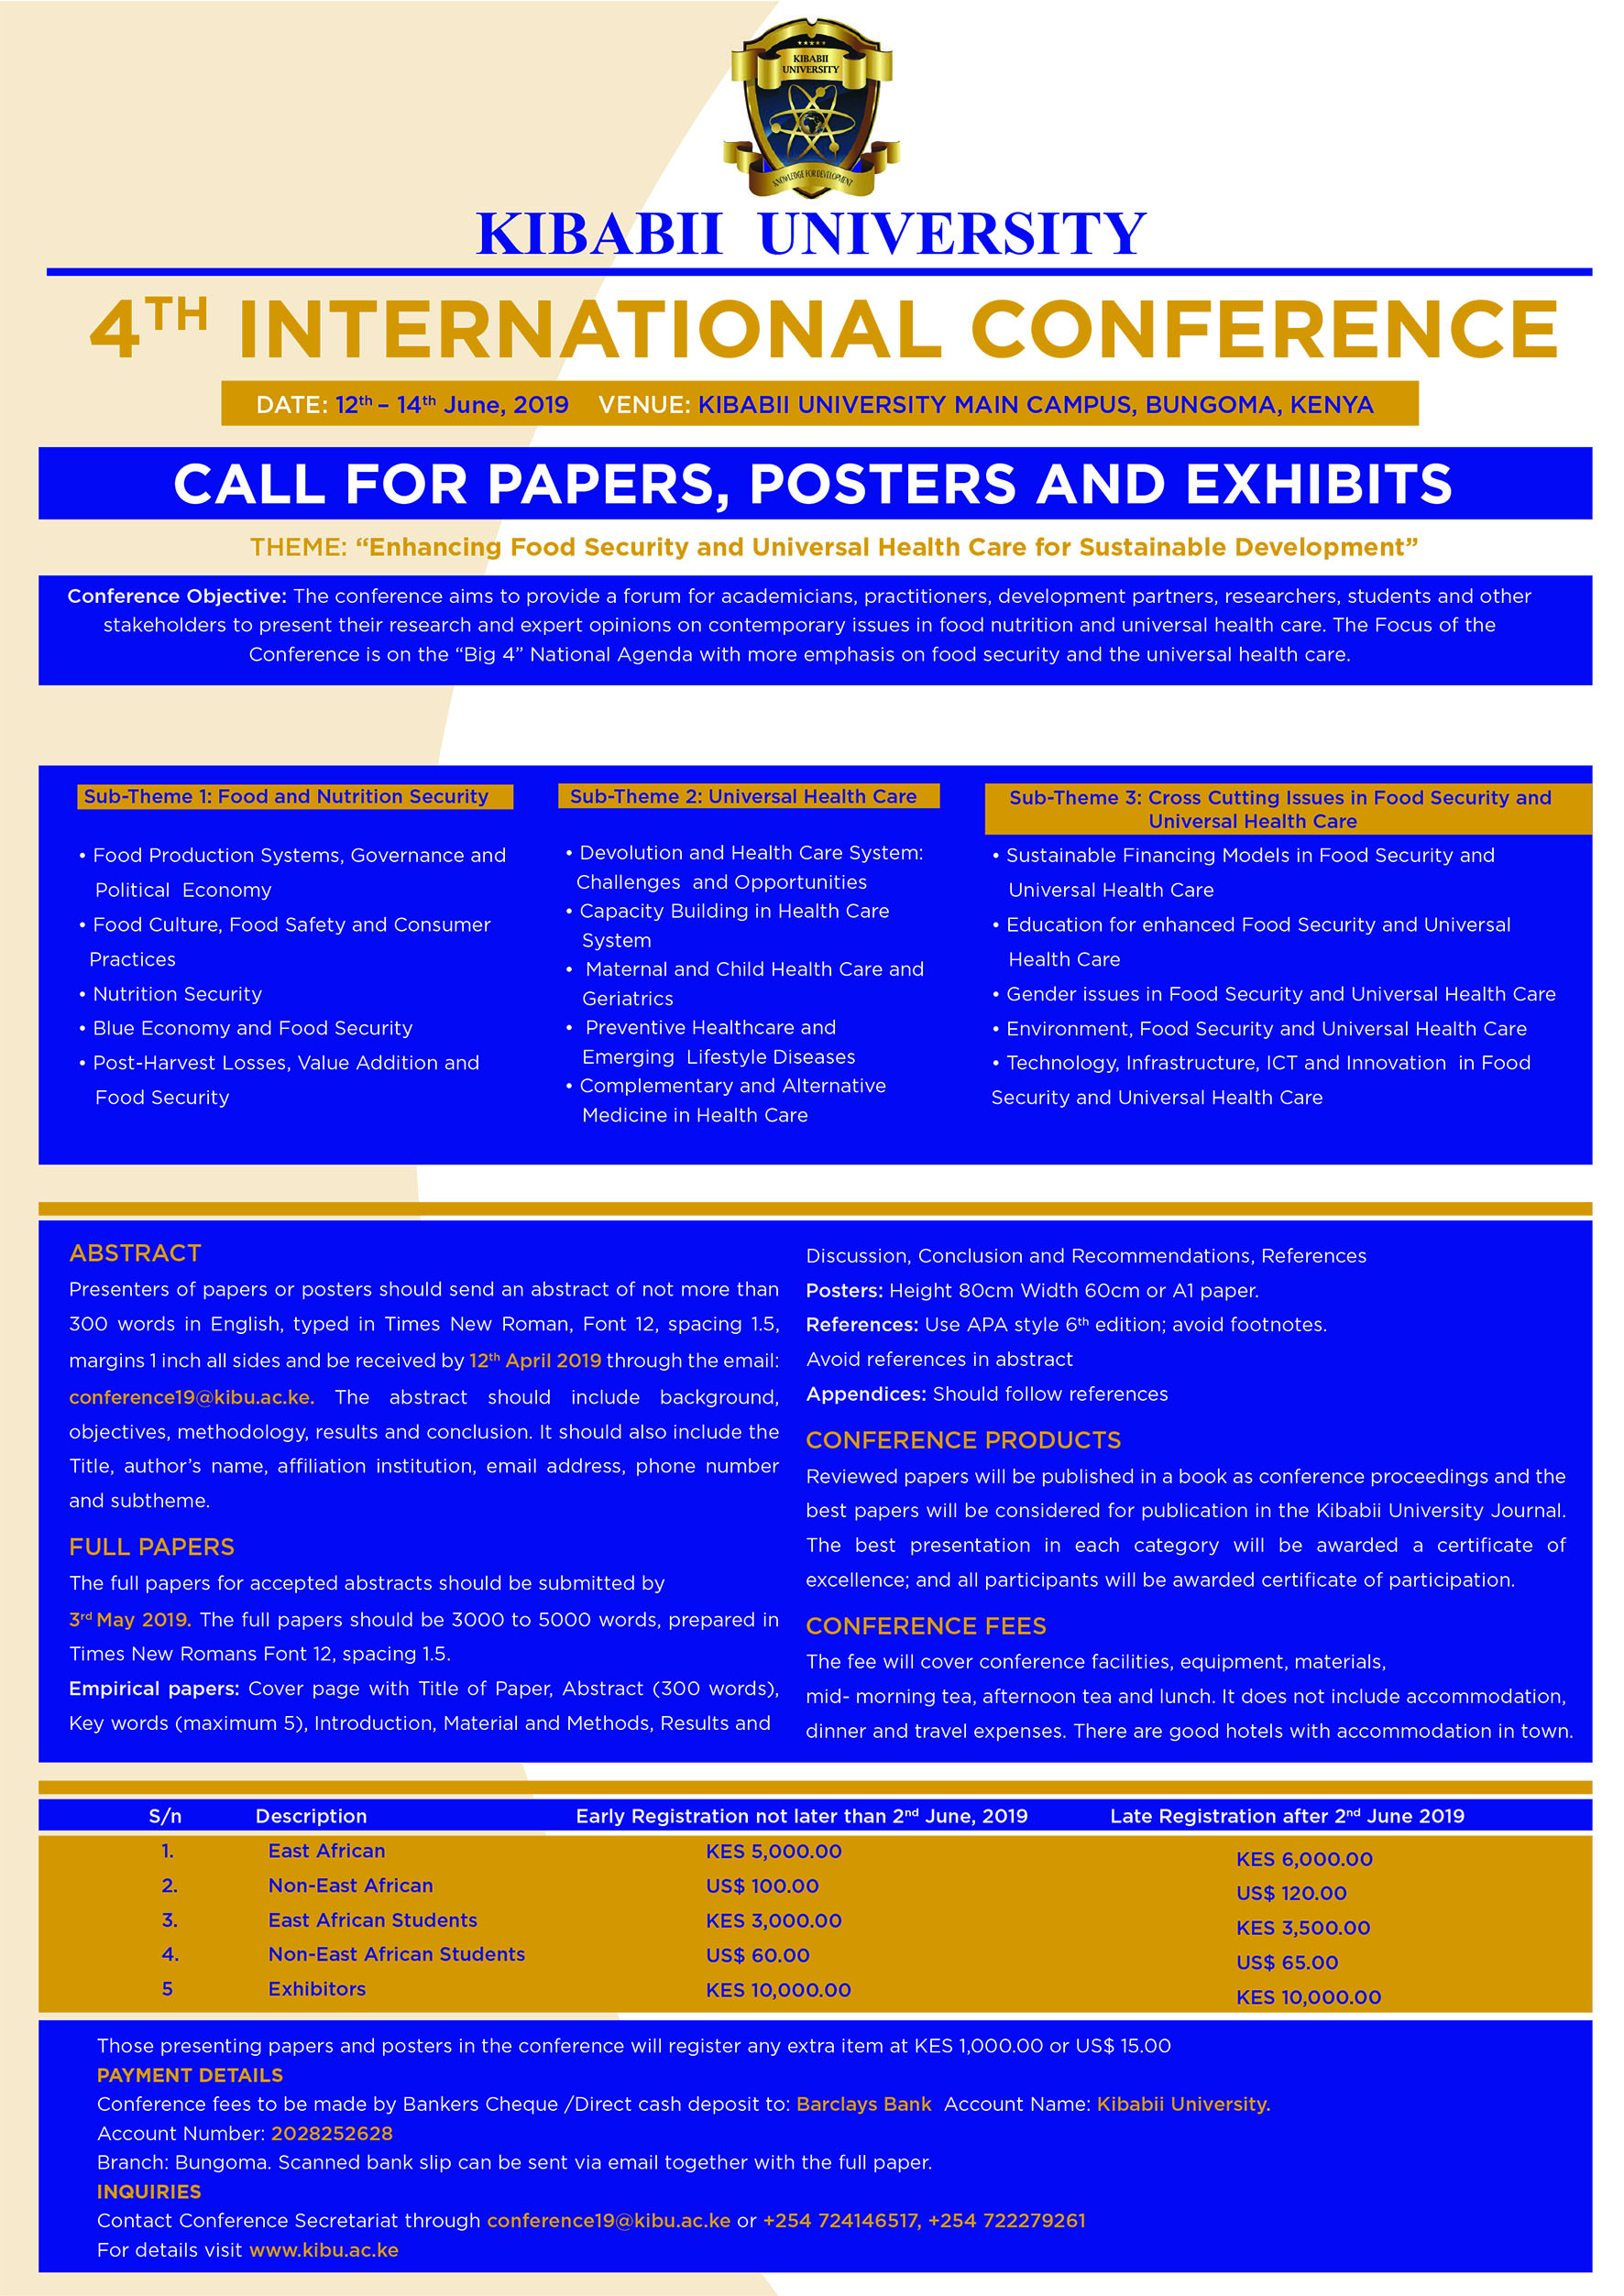 Extension of Abstracts Submission for the 4th Kibabii University International Conference